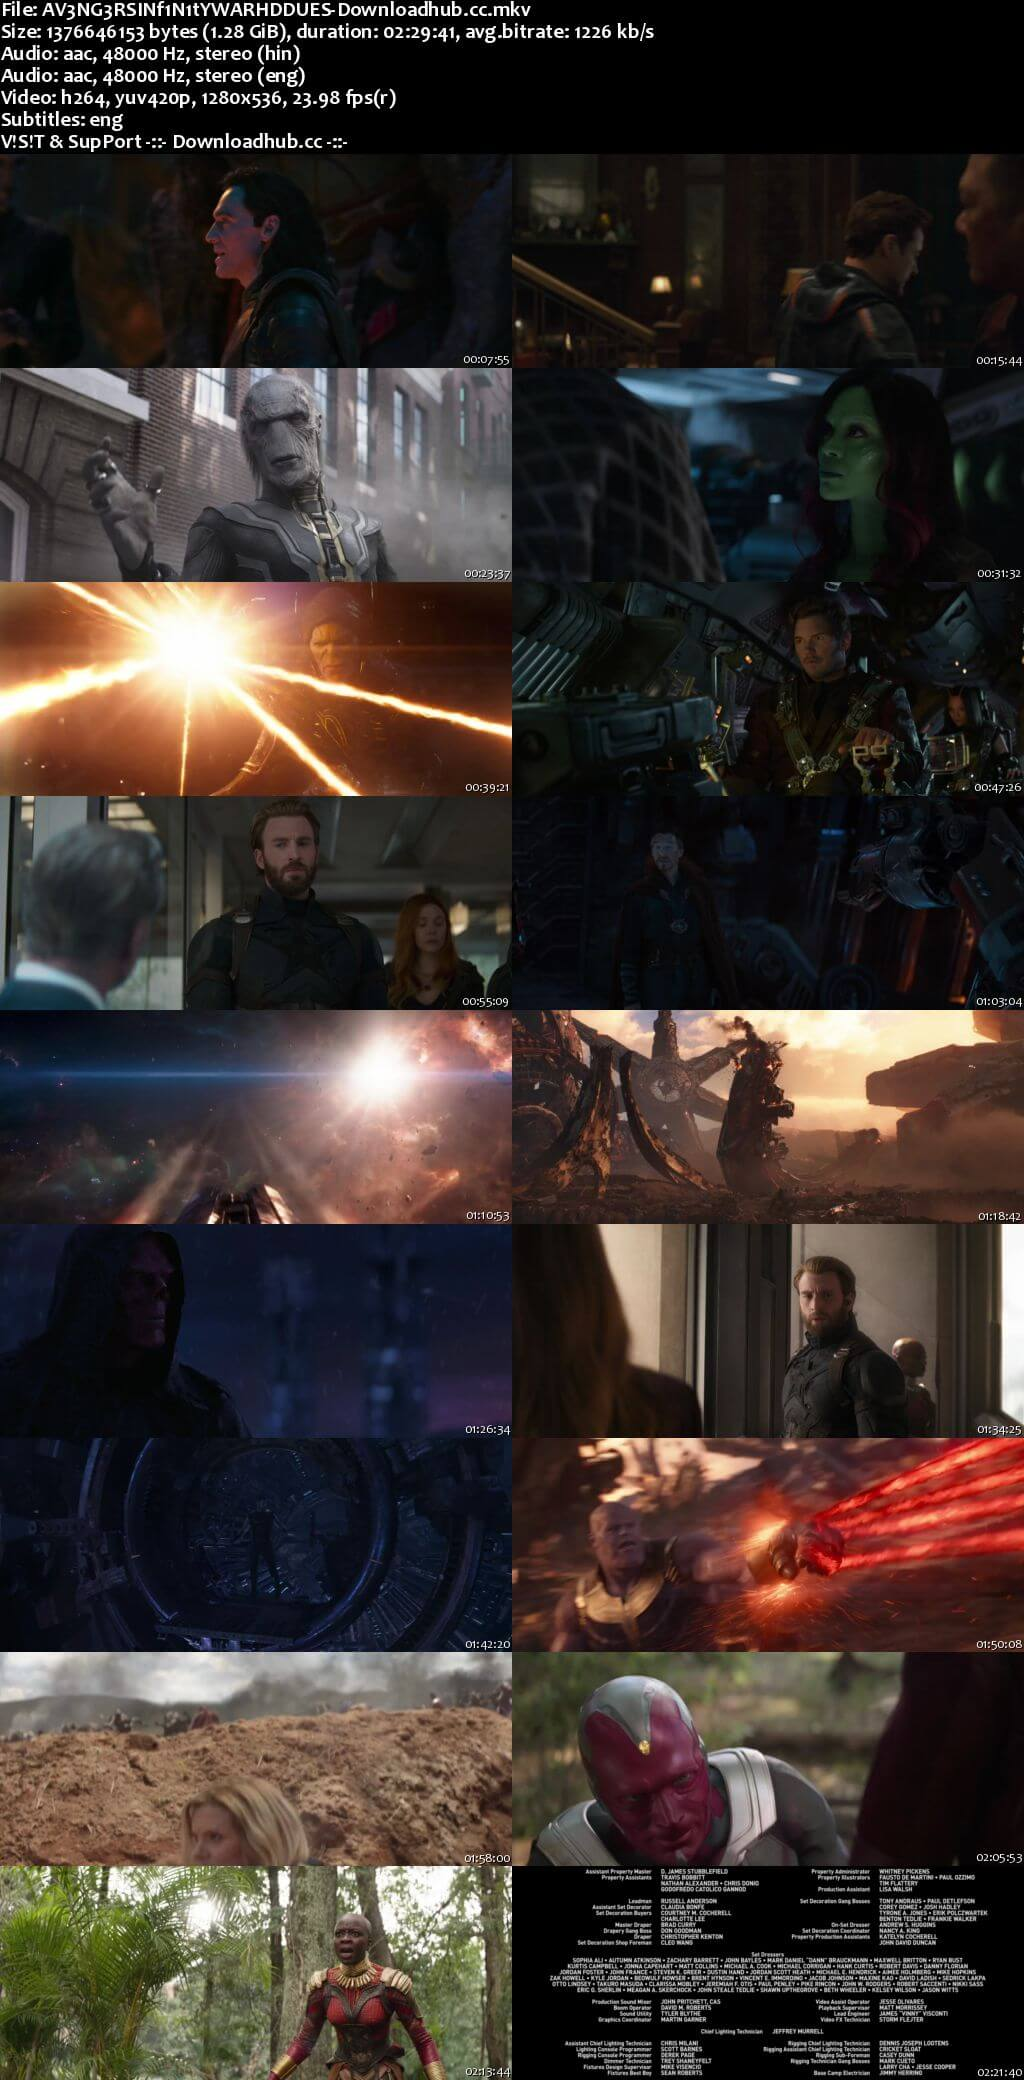 Avengers Infinity War 2018 Dual Audio 720p Web-DL [Hindi (Cleaned) - English] ESubs